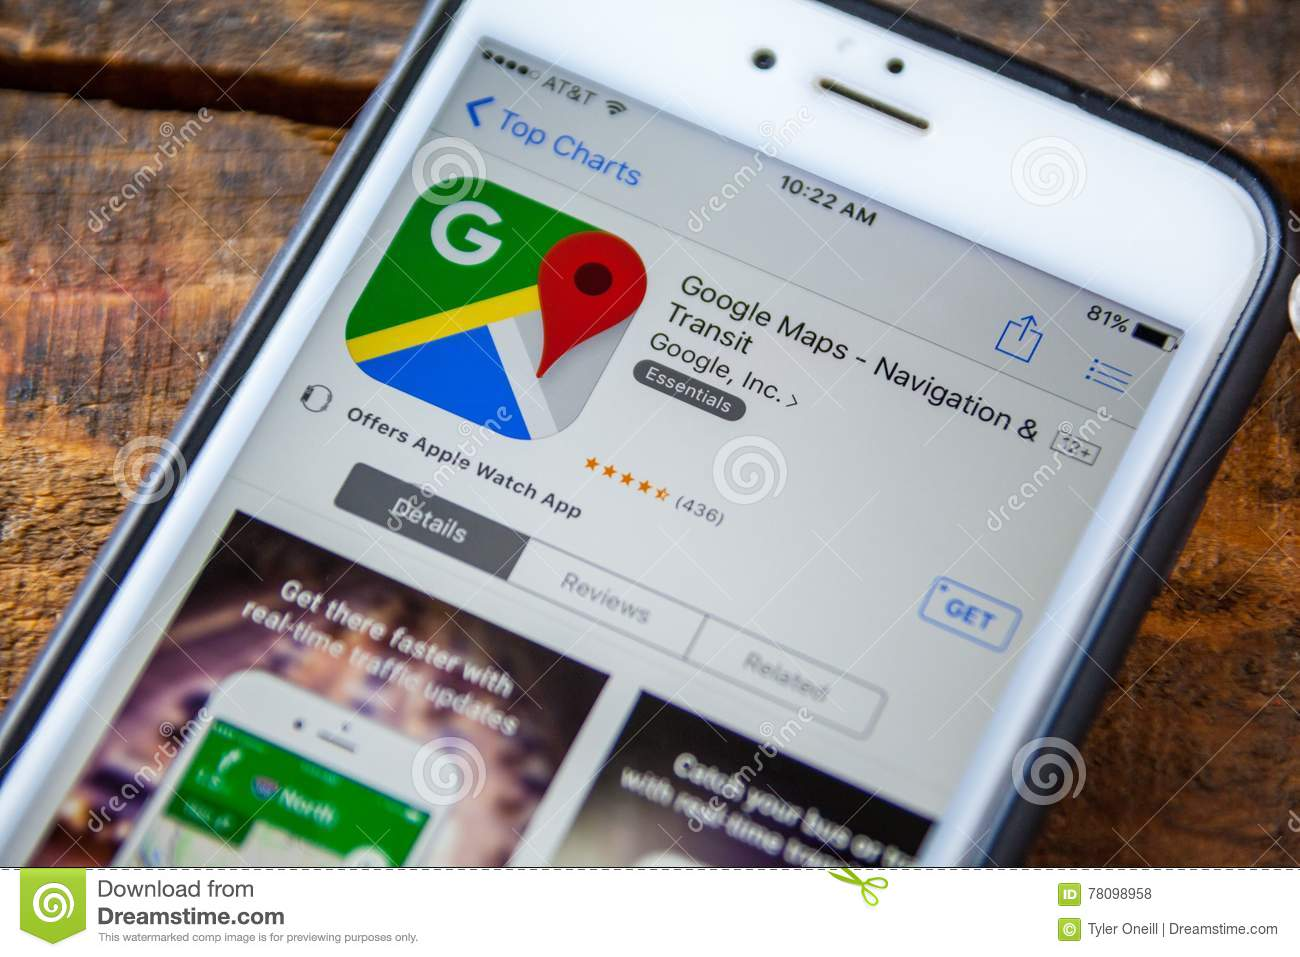 Download Google Map Apps on